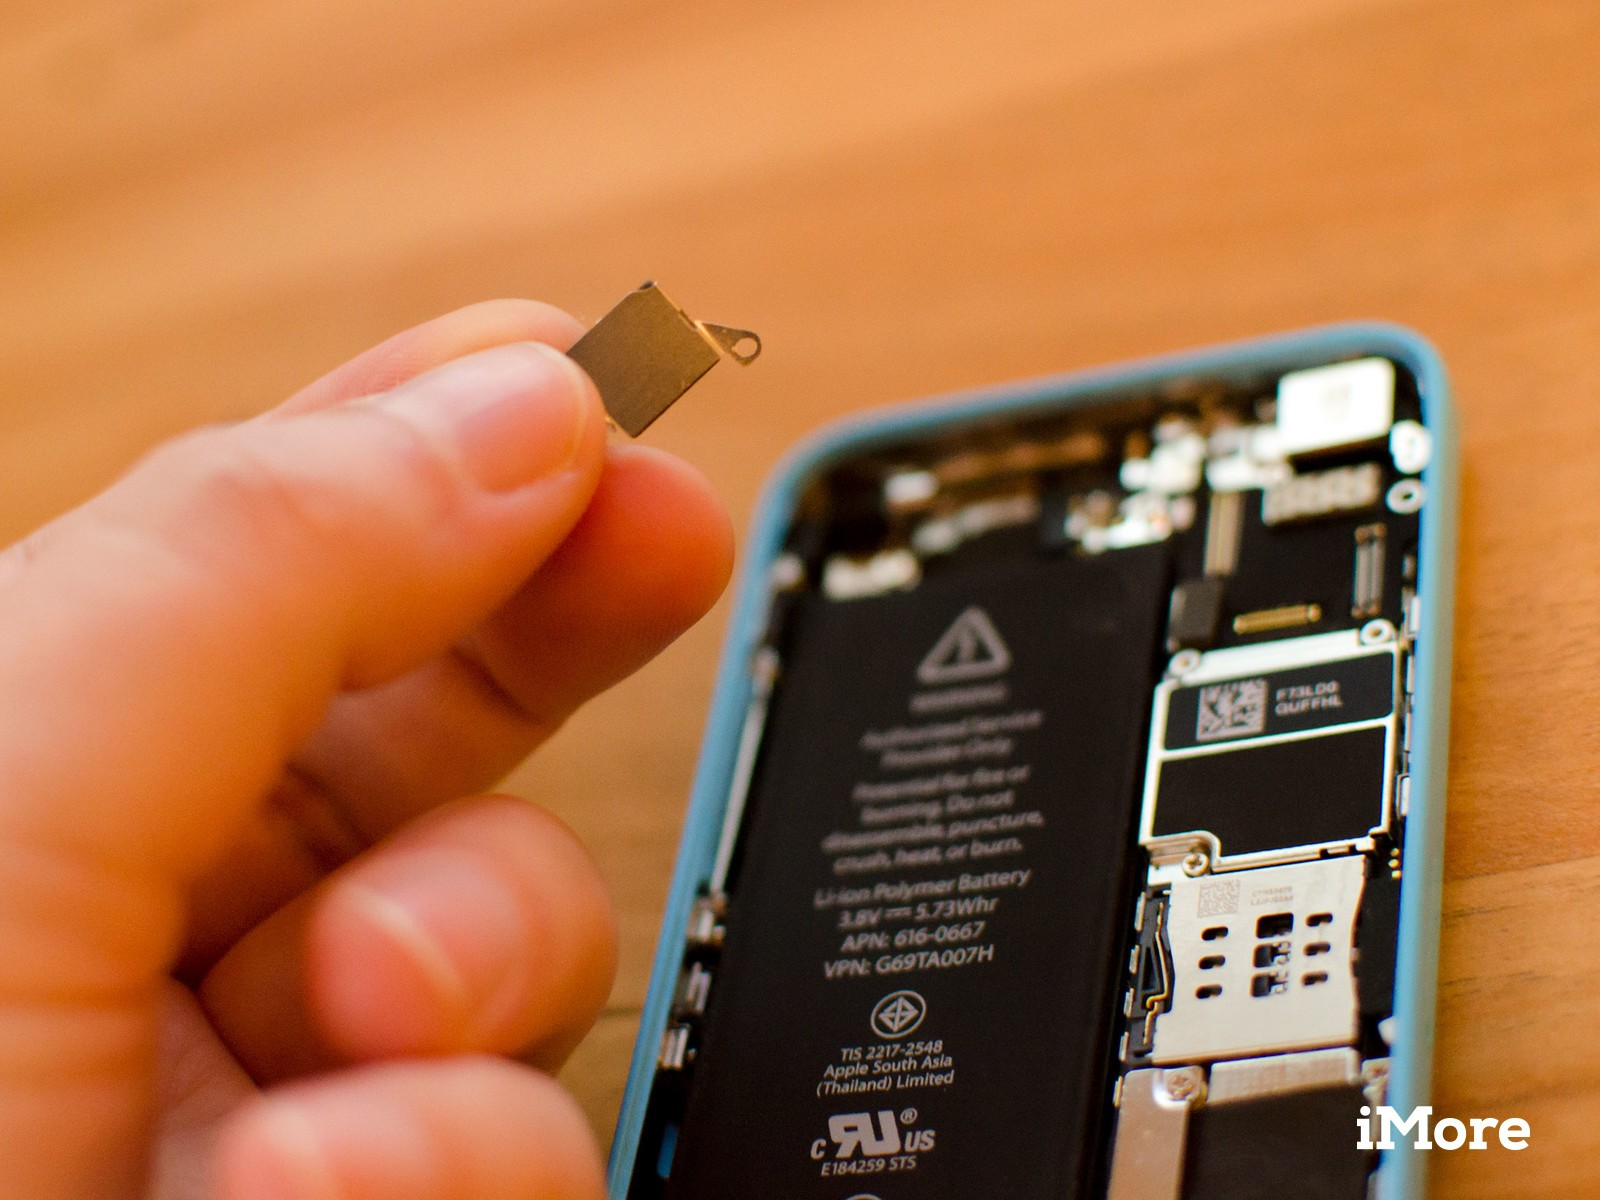 How to replace the rear iSight camera in an iPhone 5c